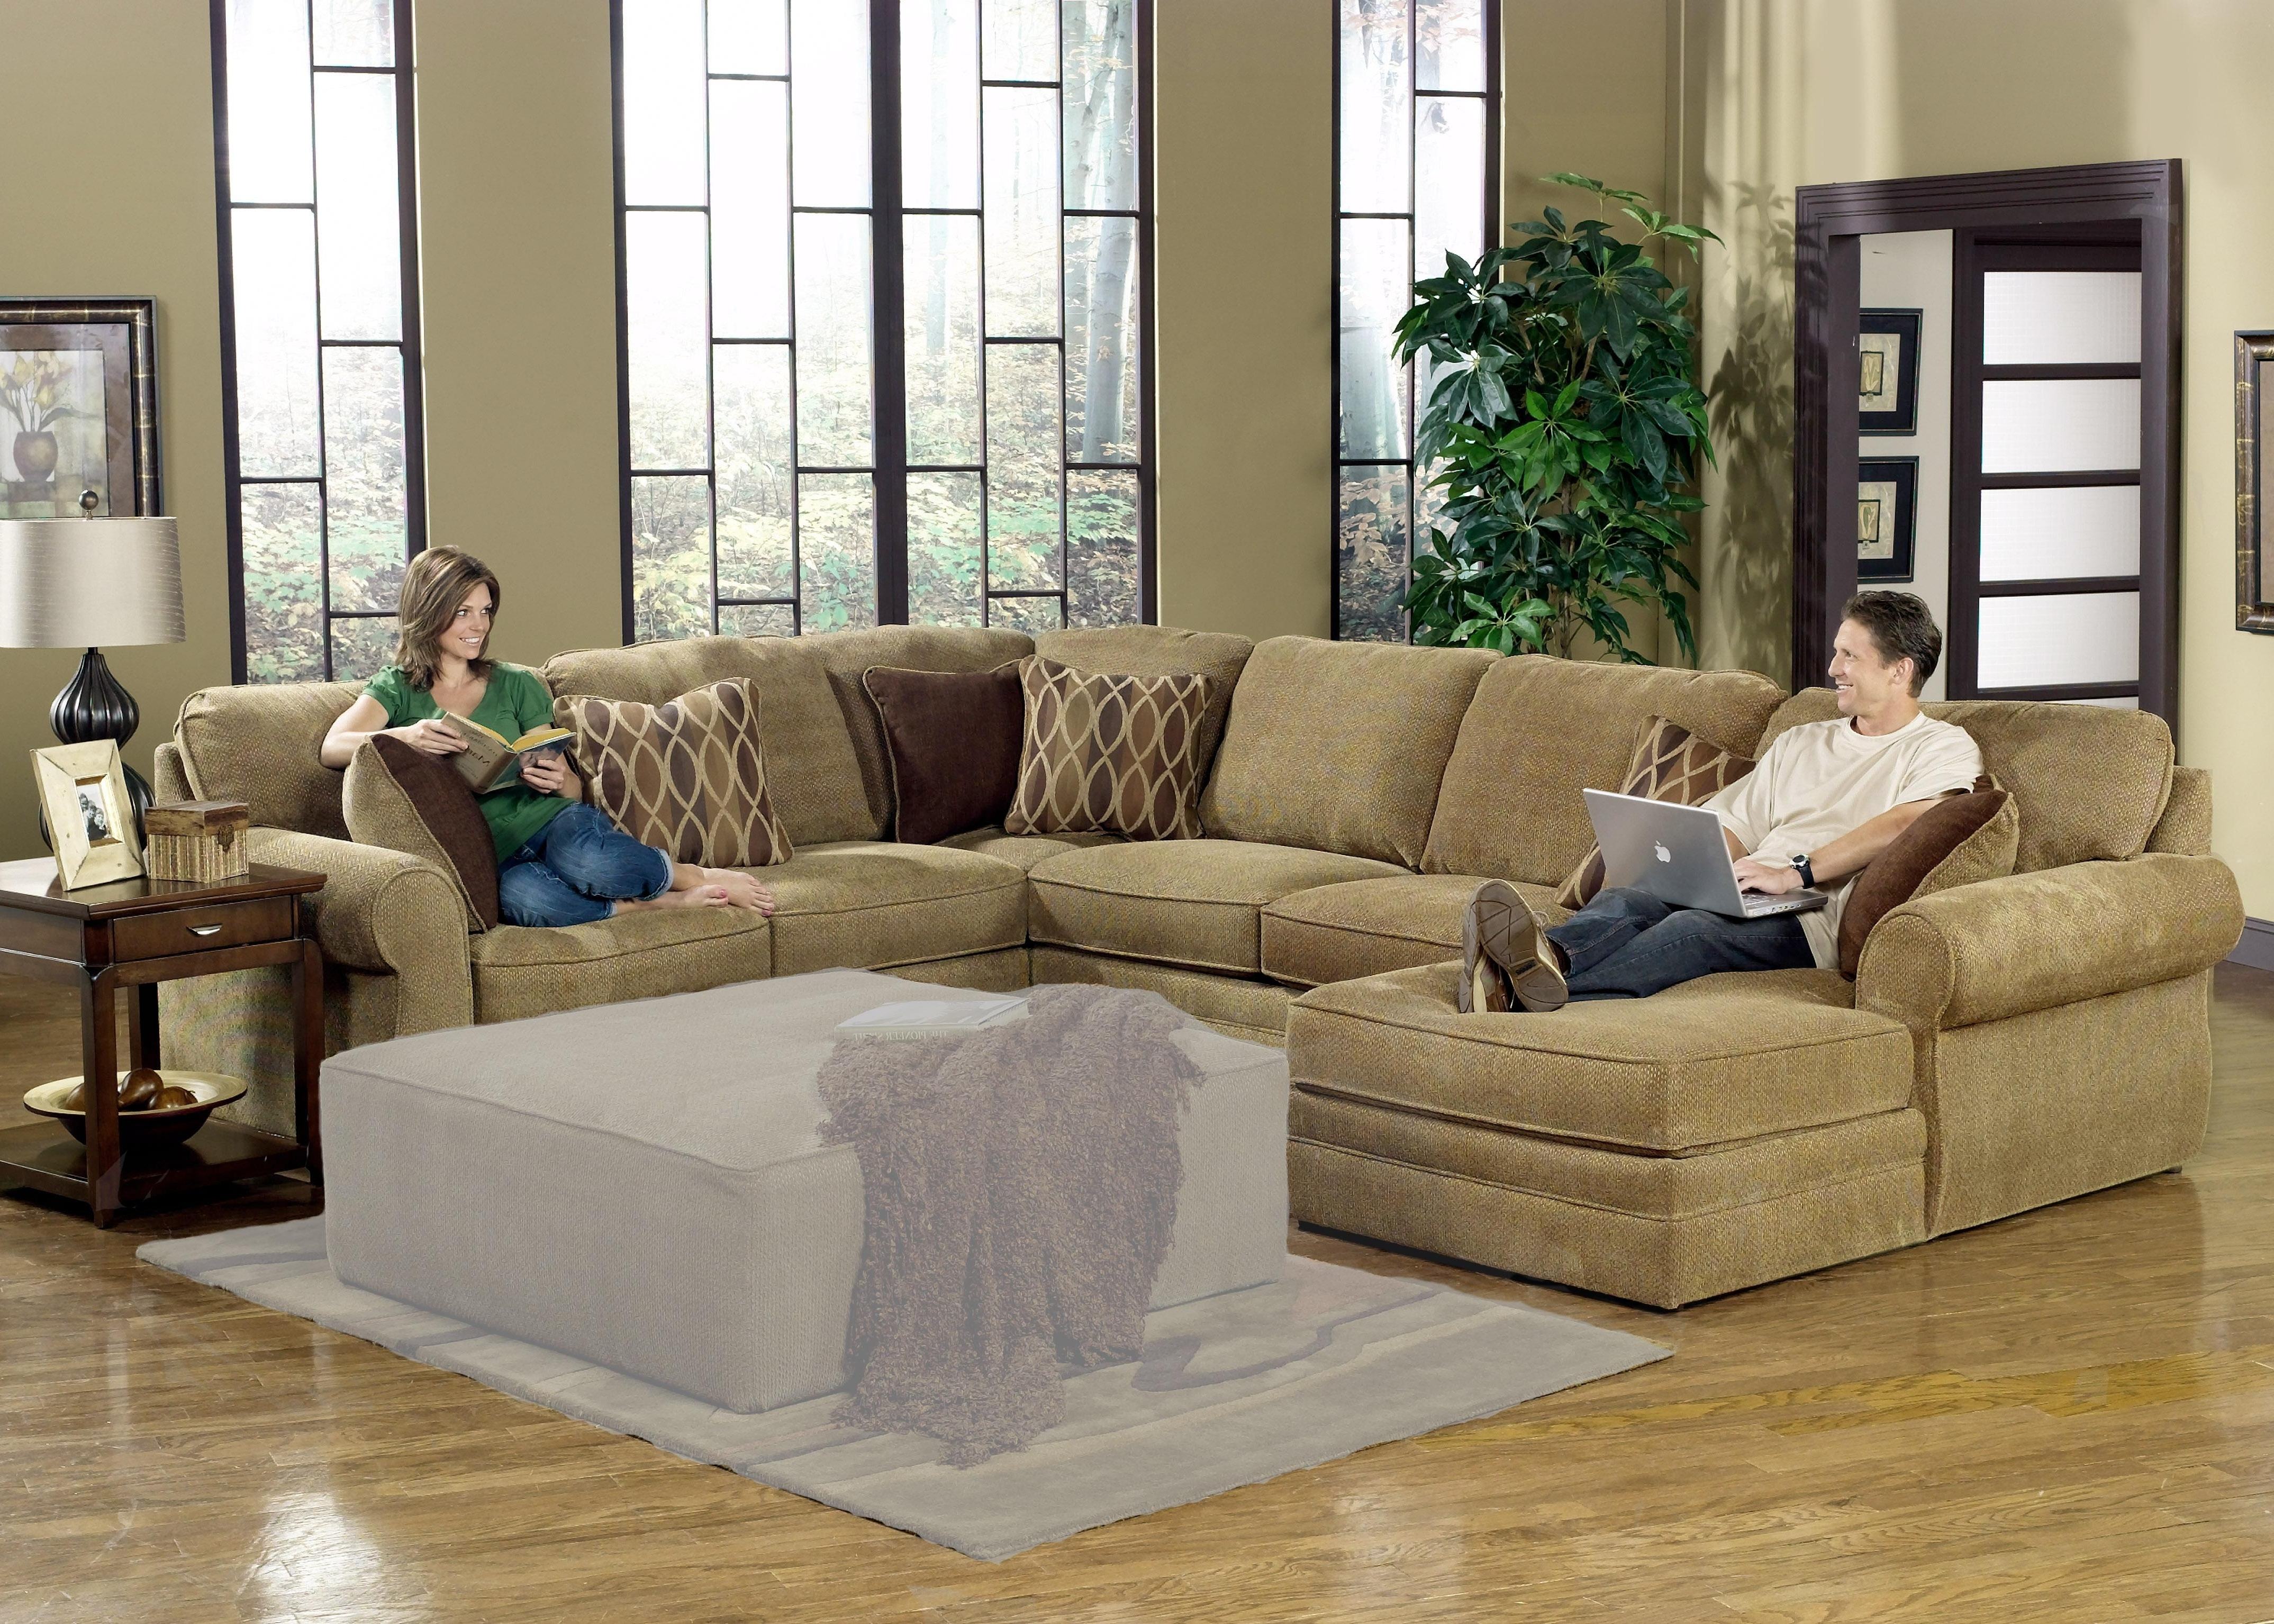 Preferred Sectional Sofas At Atlanta Intended For Huge Sectional Sofas – Tourdecarroll (View 7 of 15)